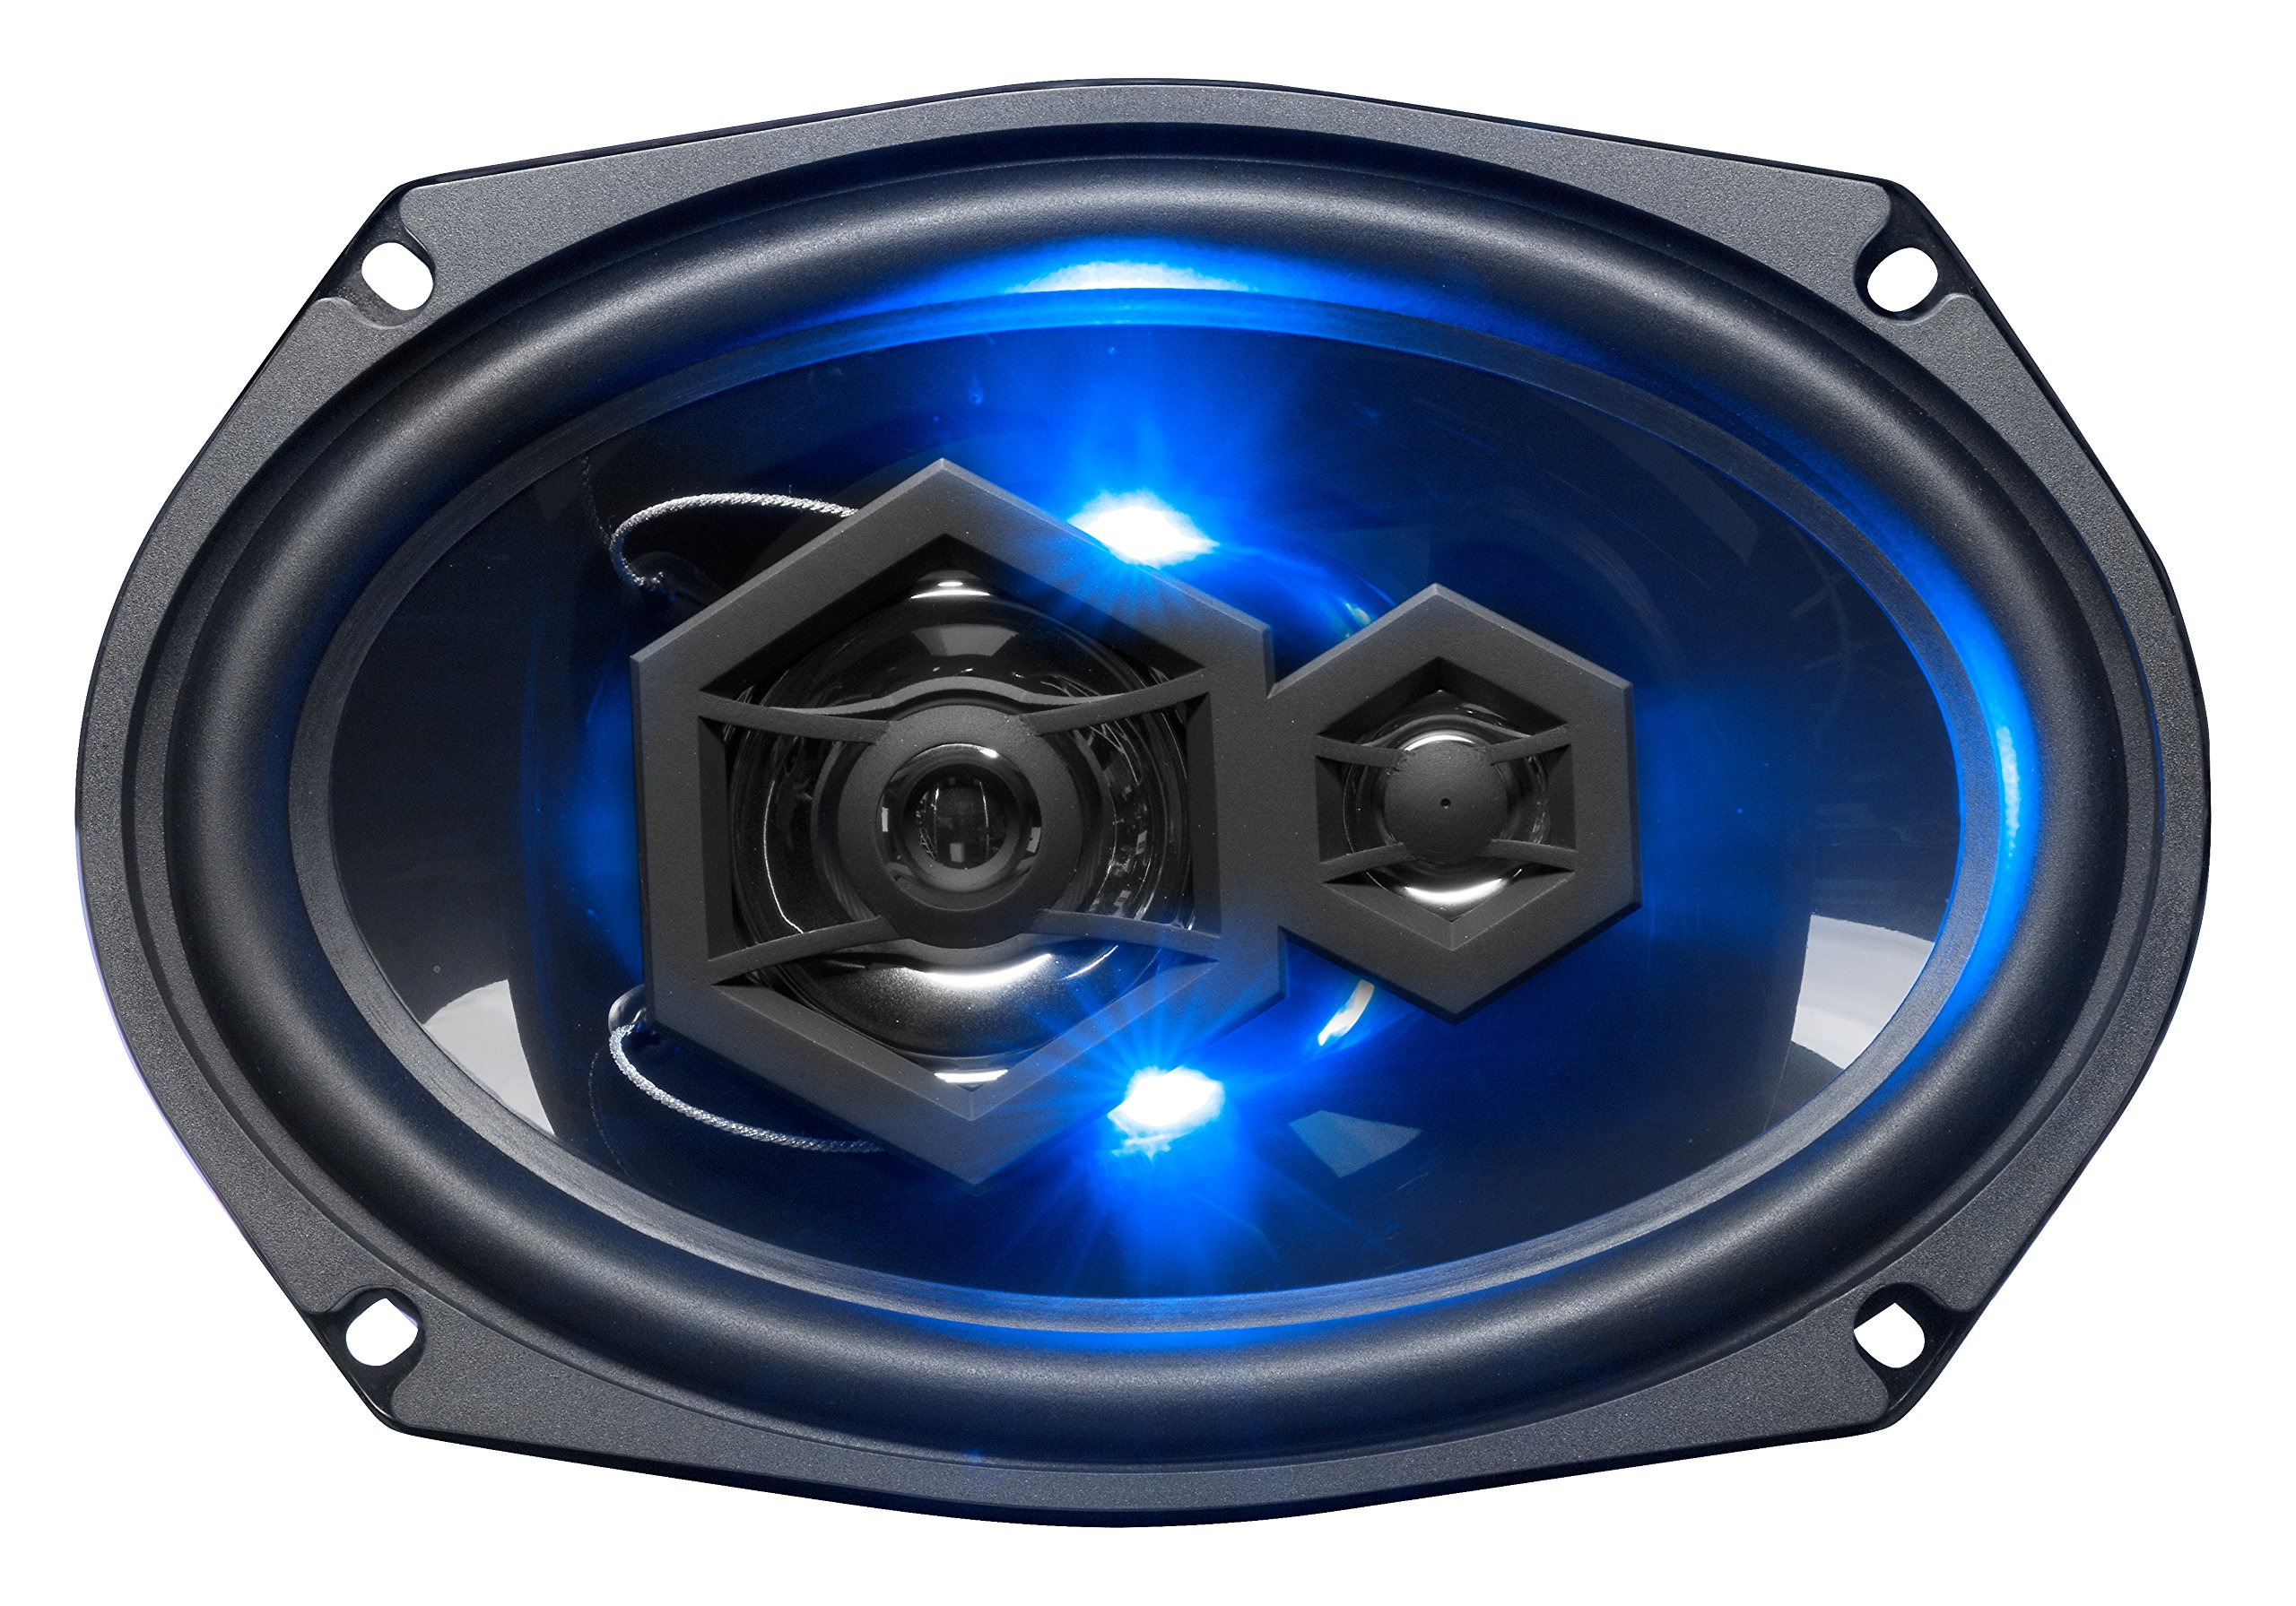 "BOSS Audio B69LED 6"" x 9"" Car Speakers - 300 Watts of Power Per Pair, 150 Watts Each, 3 Way, Sold in Pairs, Easy Mounting"